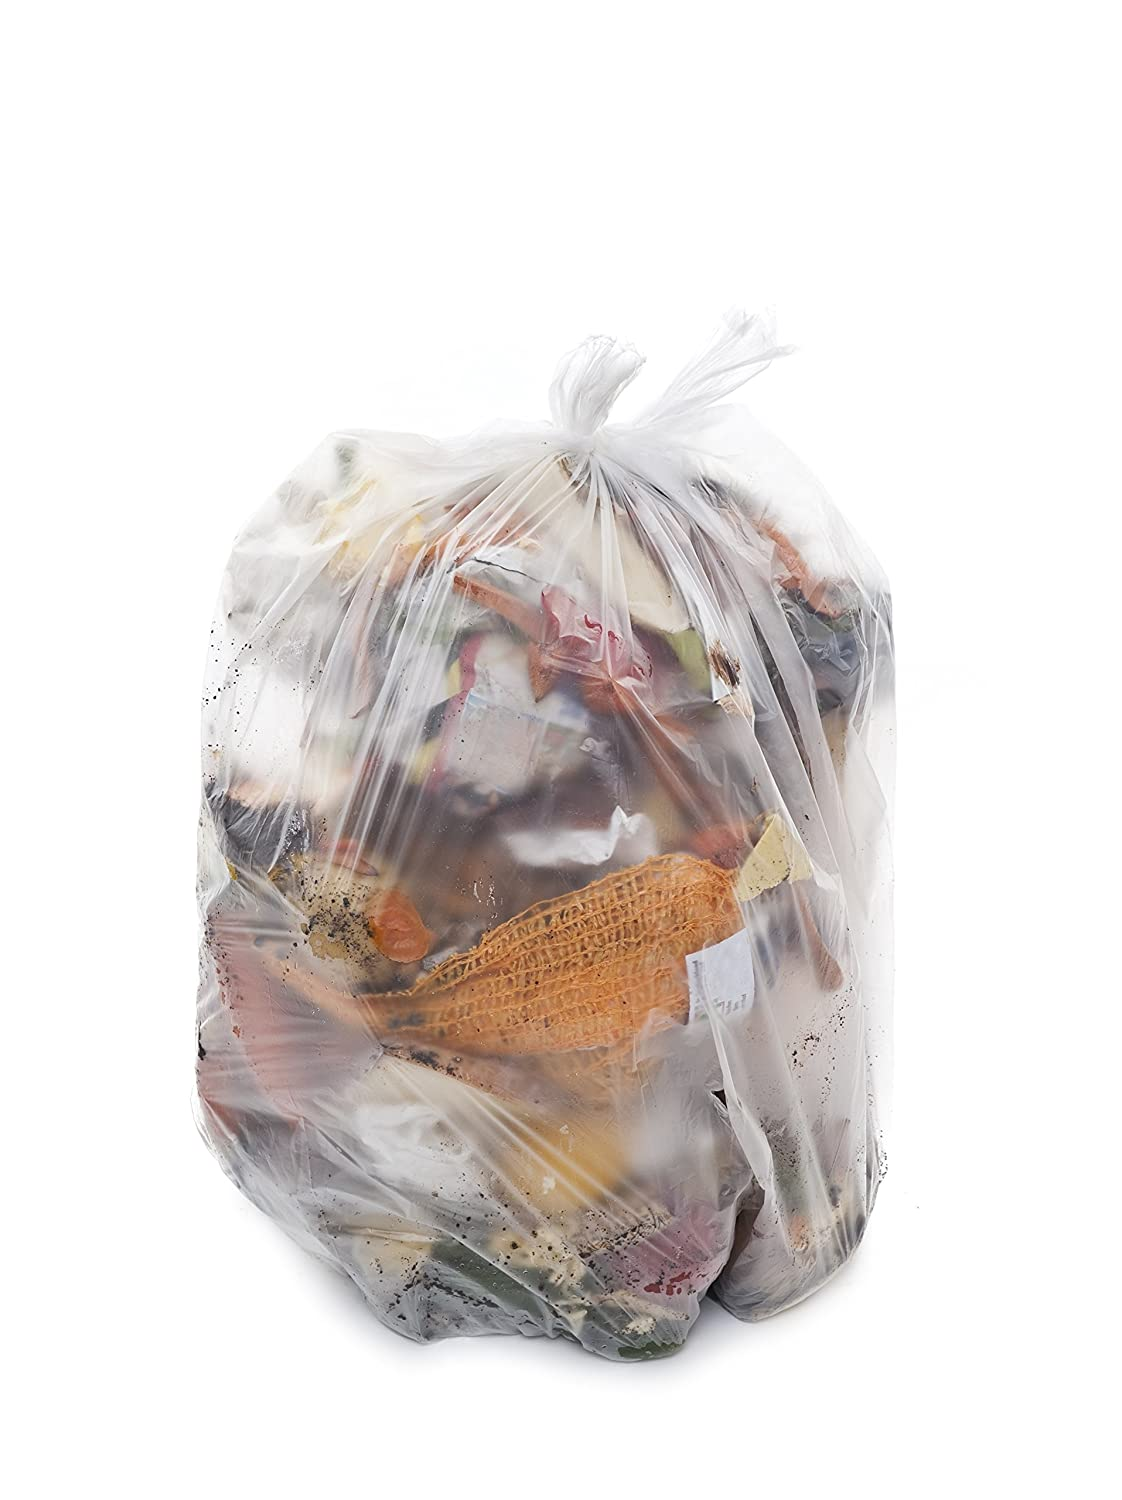 Resilia 40-45 Gallon Super Strong Trash Bags 1.5 Mil Thick 40x46 inches Made in USA Blue Recycling 50 Bags//Roll Wire Ties Included WxH